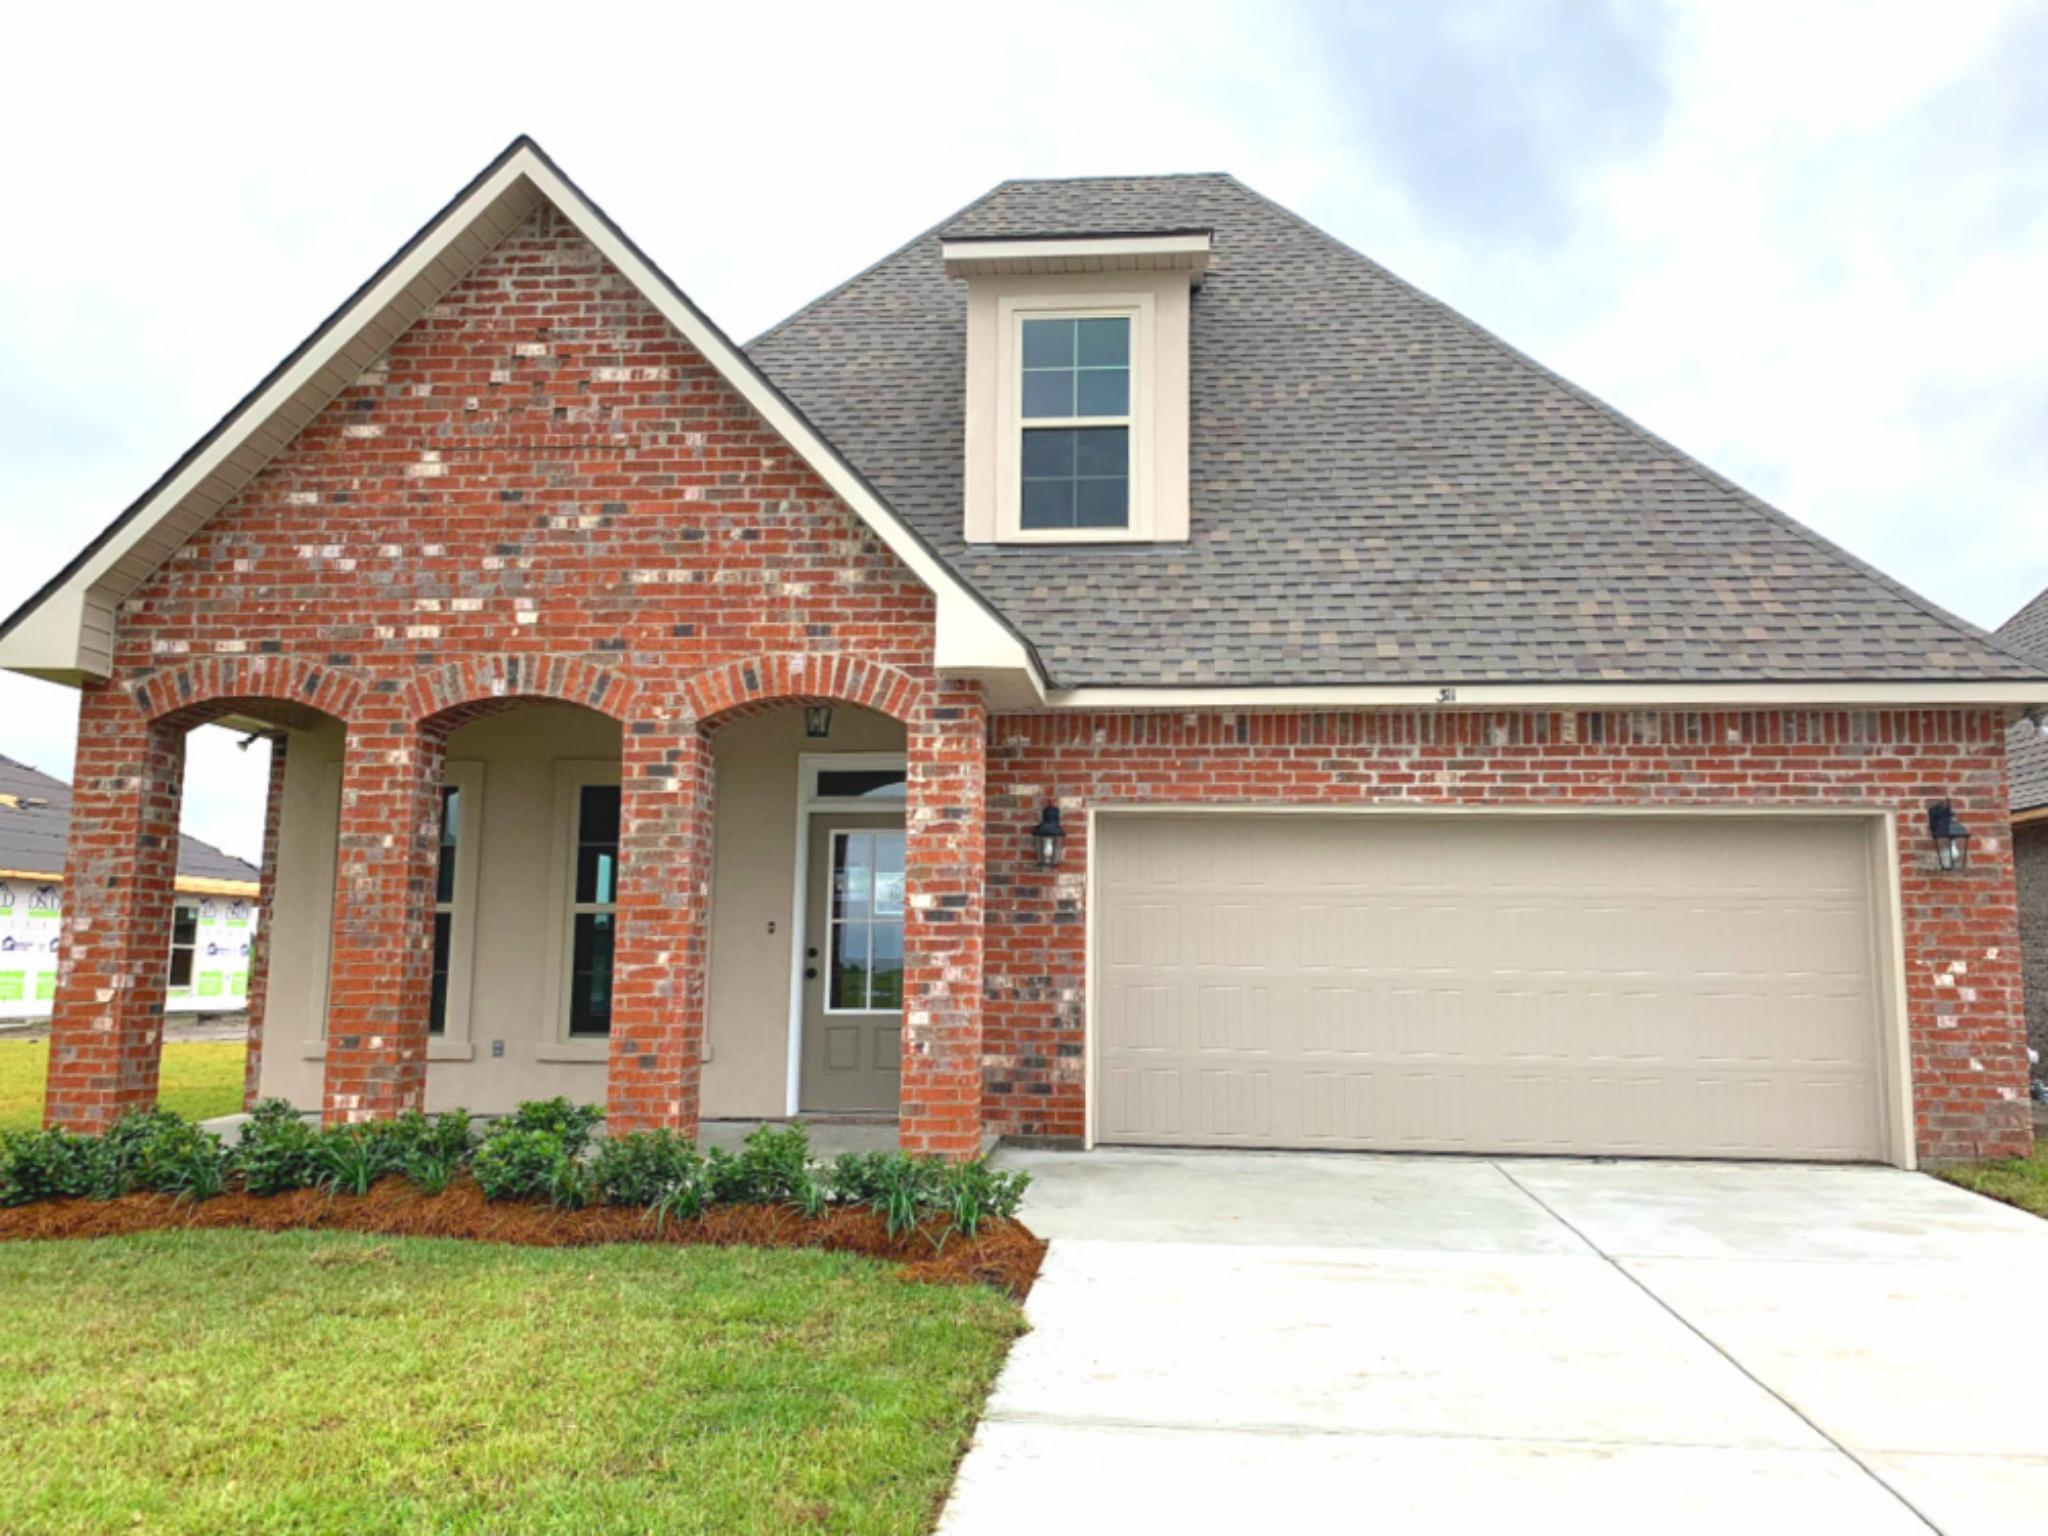 Canna III C at The Settlement at Live Oak by DSLD Homes ... on